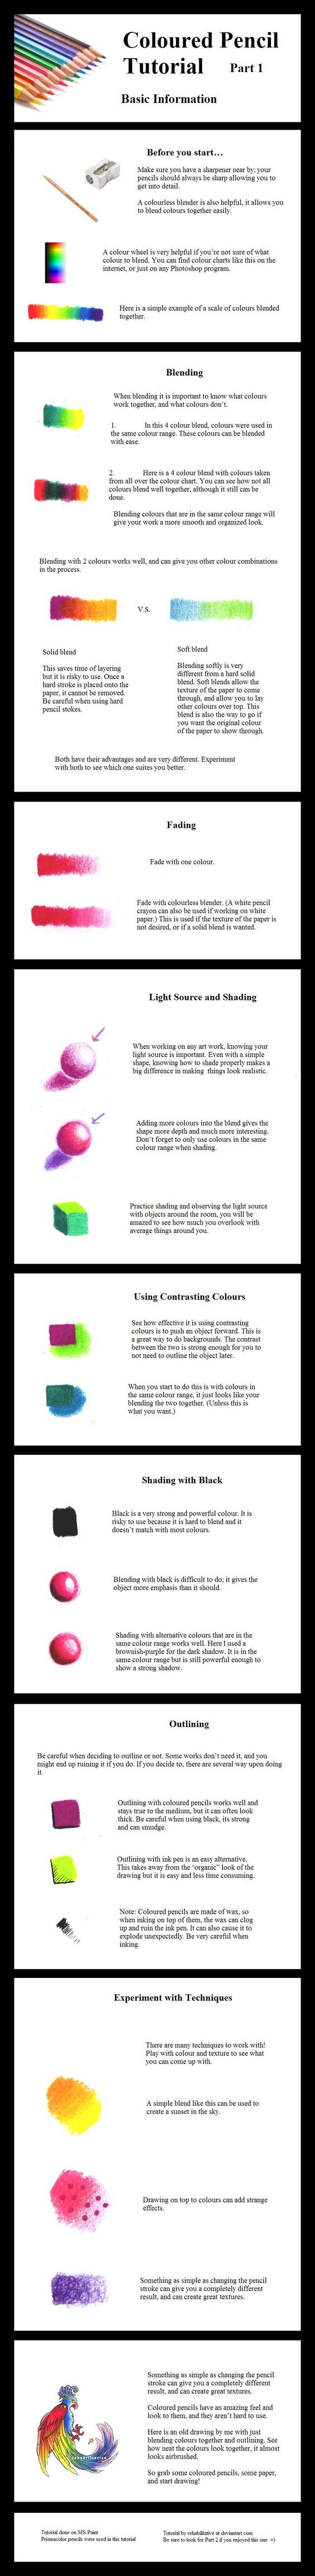 This is a nice colored pencil tutorial!